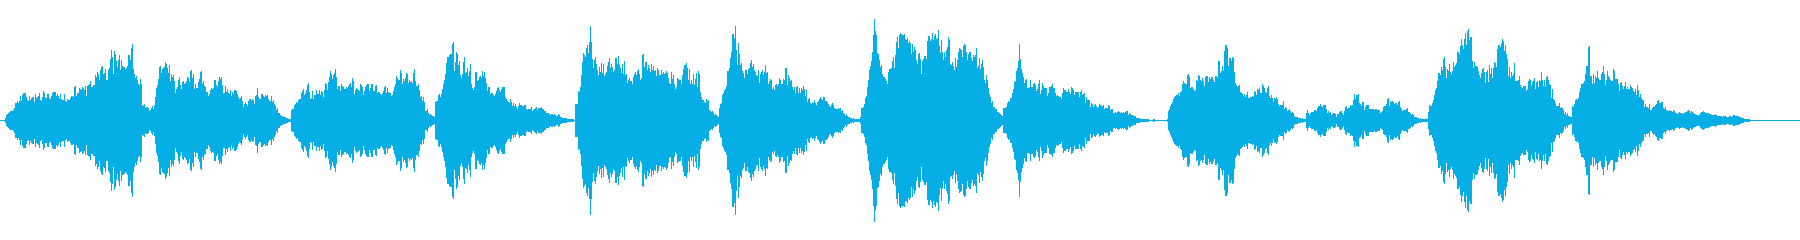 "I sang gently with ""Ah"" for BGM's reproduced waveform"